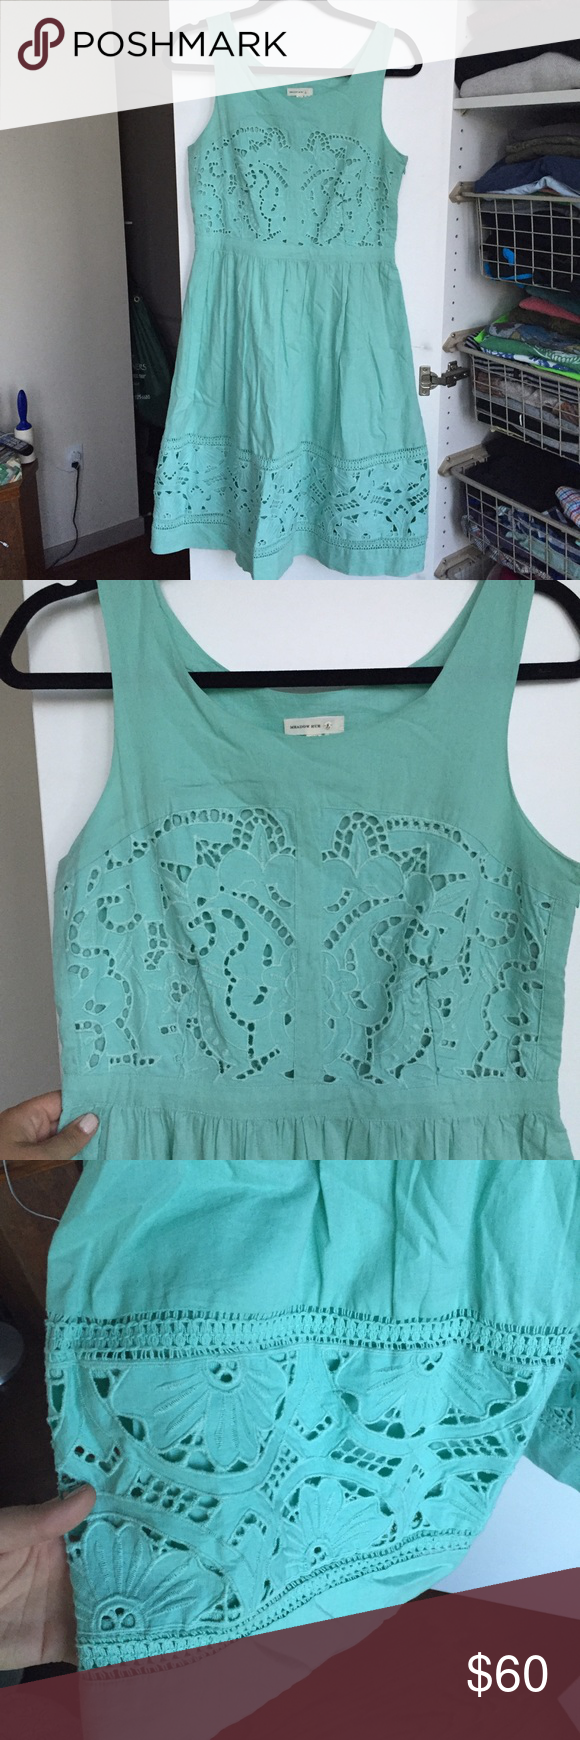 Mint green dress Worn once, embroidered cotton dress, beautiful mint green, lined, hits slightly below the knee Anthropologie Dresses Midi